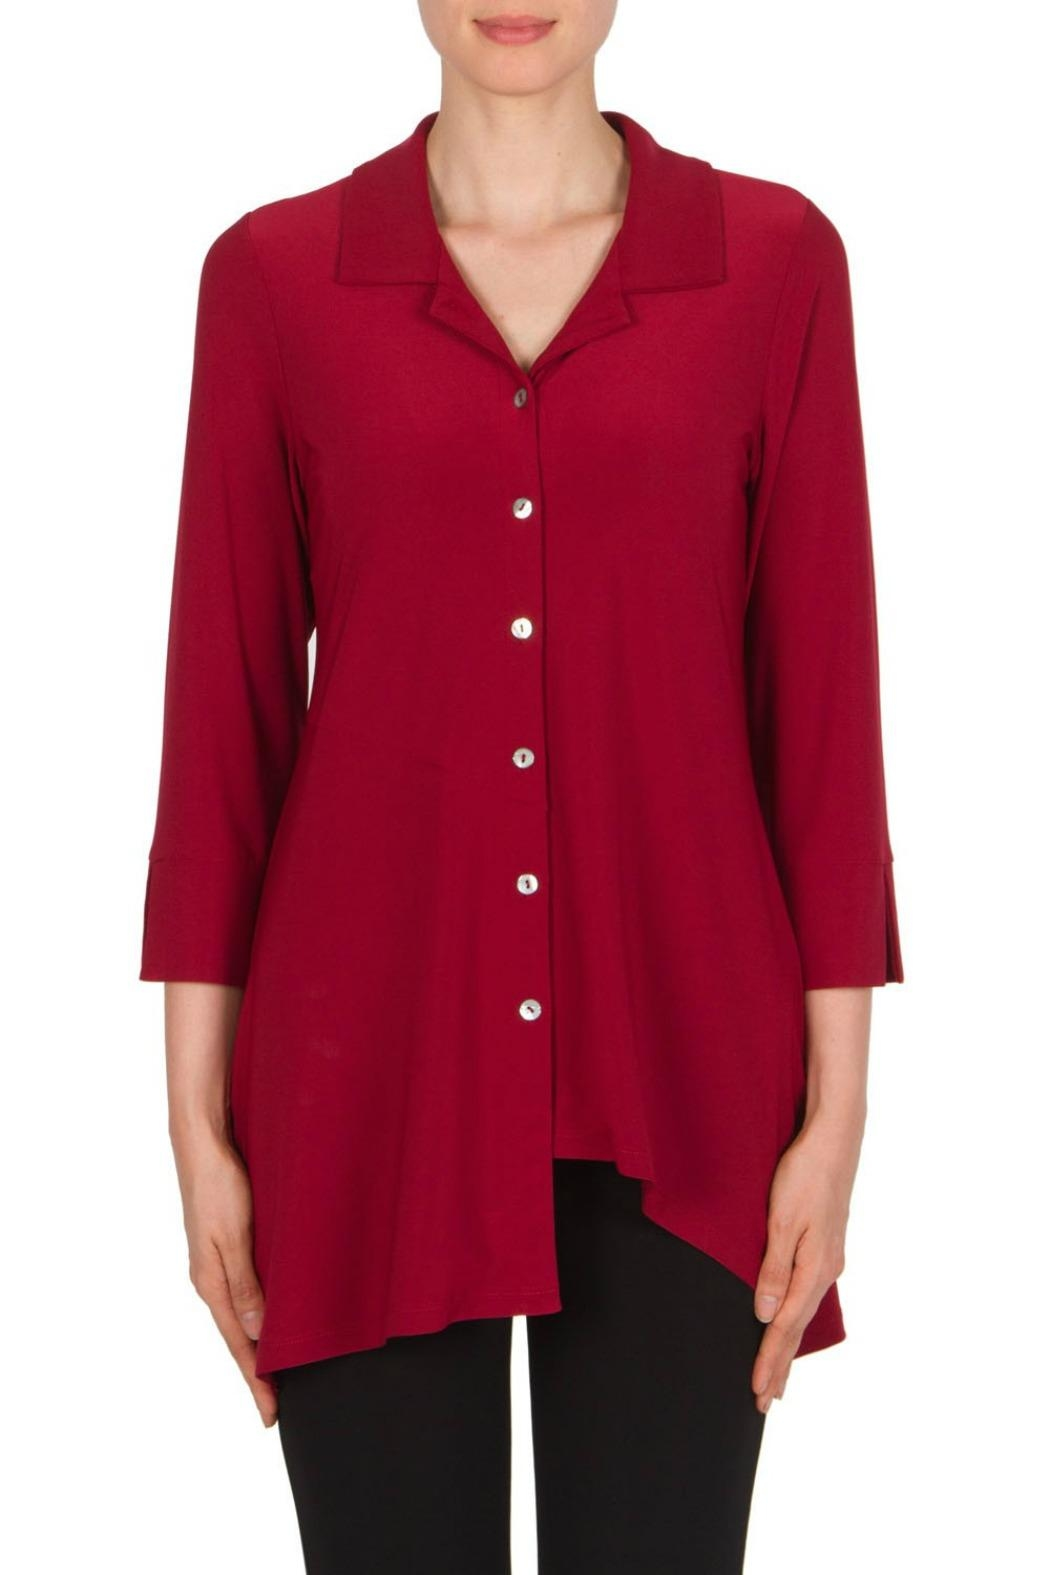 Joseph Ribkoff Tunic Claire Red Top - Front Cropped Image